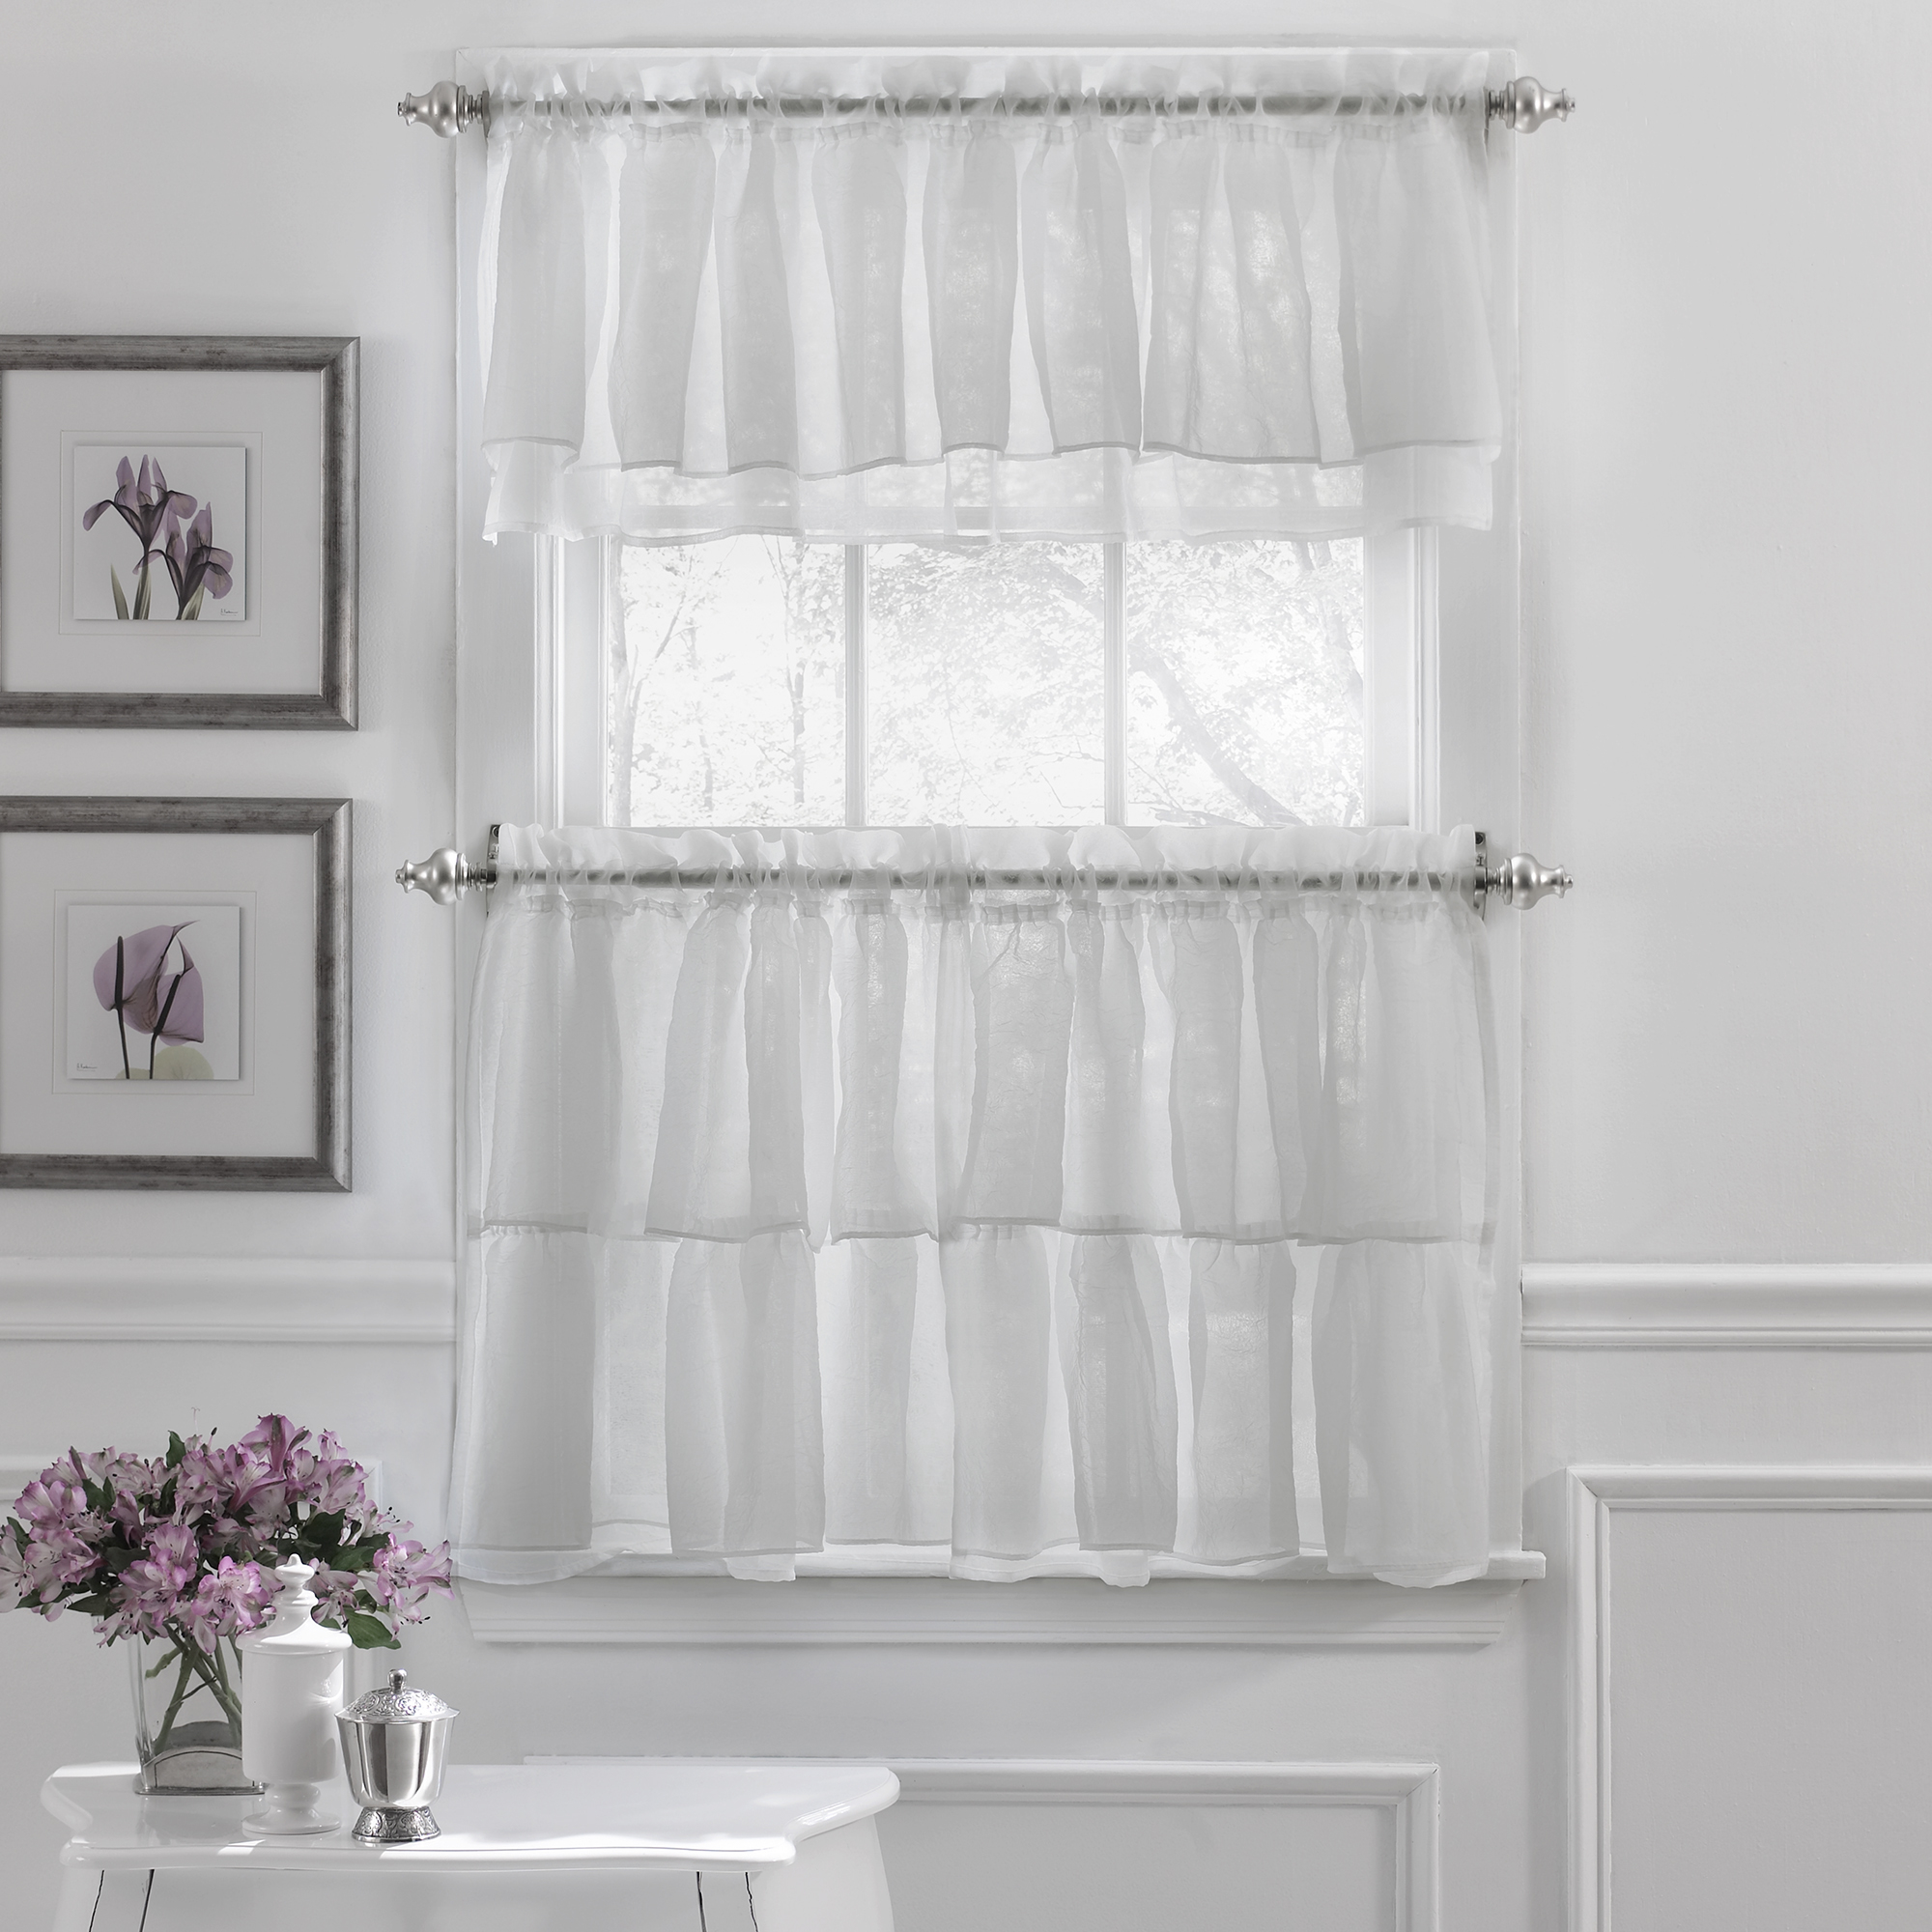 Details About Gypsy Crushed Voile Ruffle Kitchen Window Curtain Tiers Or Valance White In Classic Black And White Curtain Tiers (View 11 of 20)